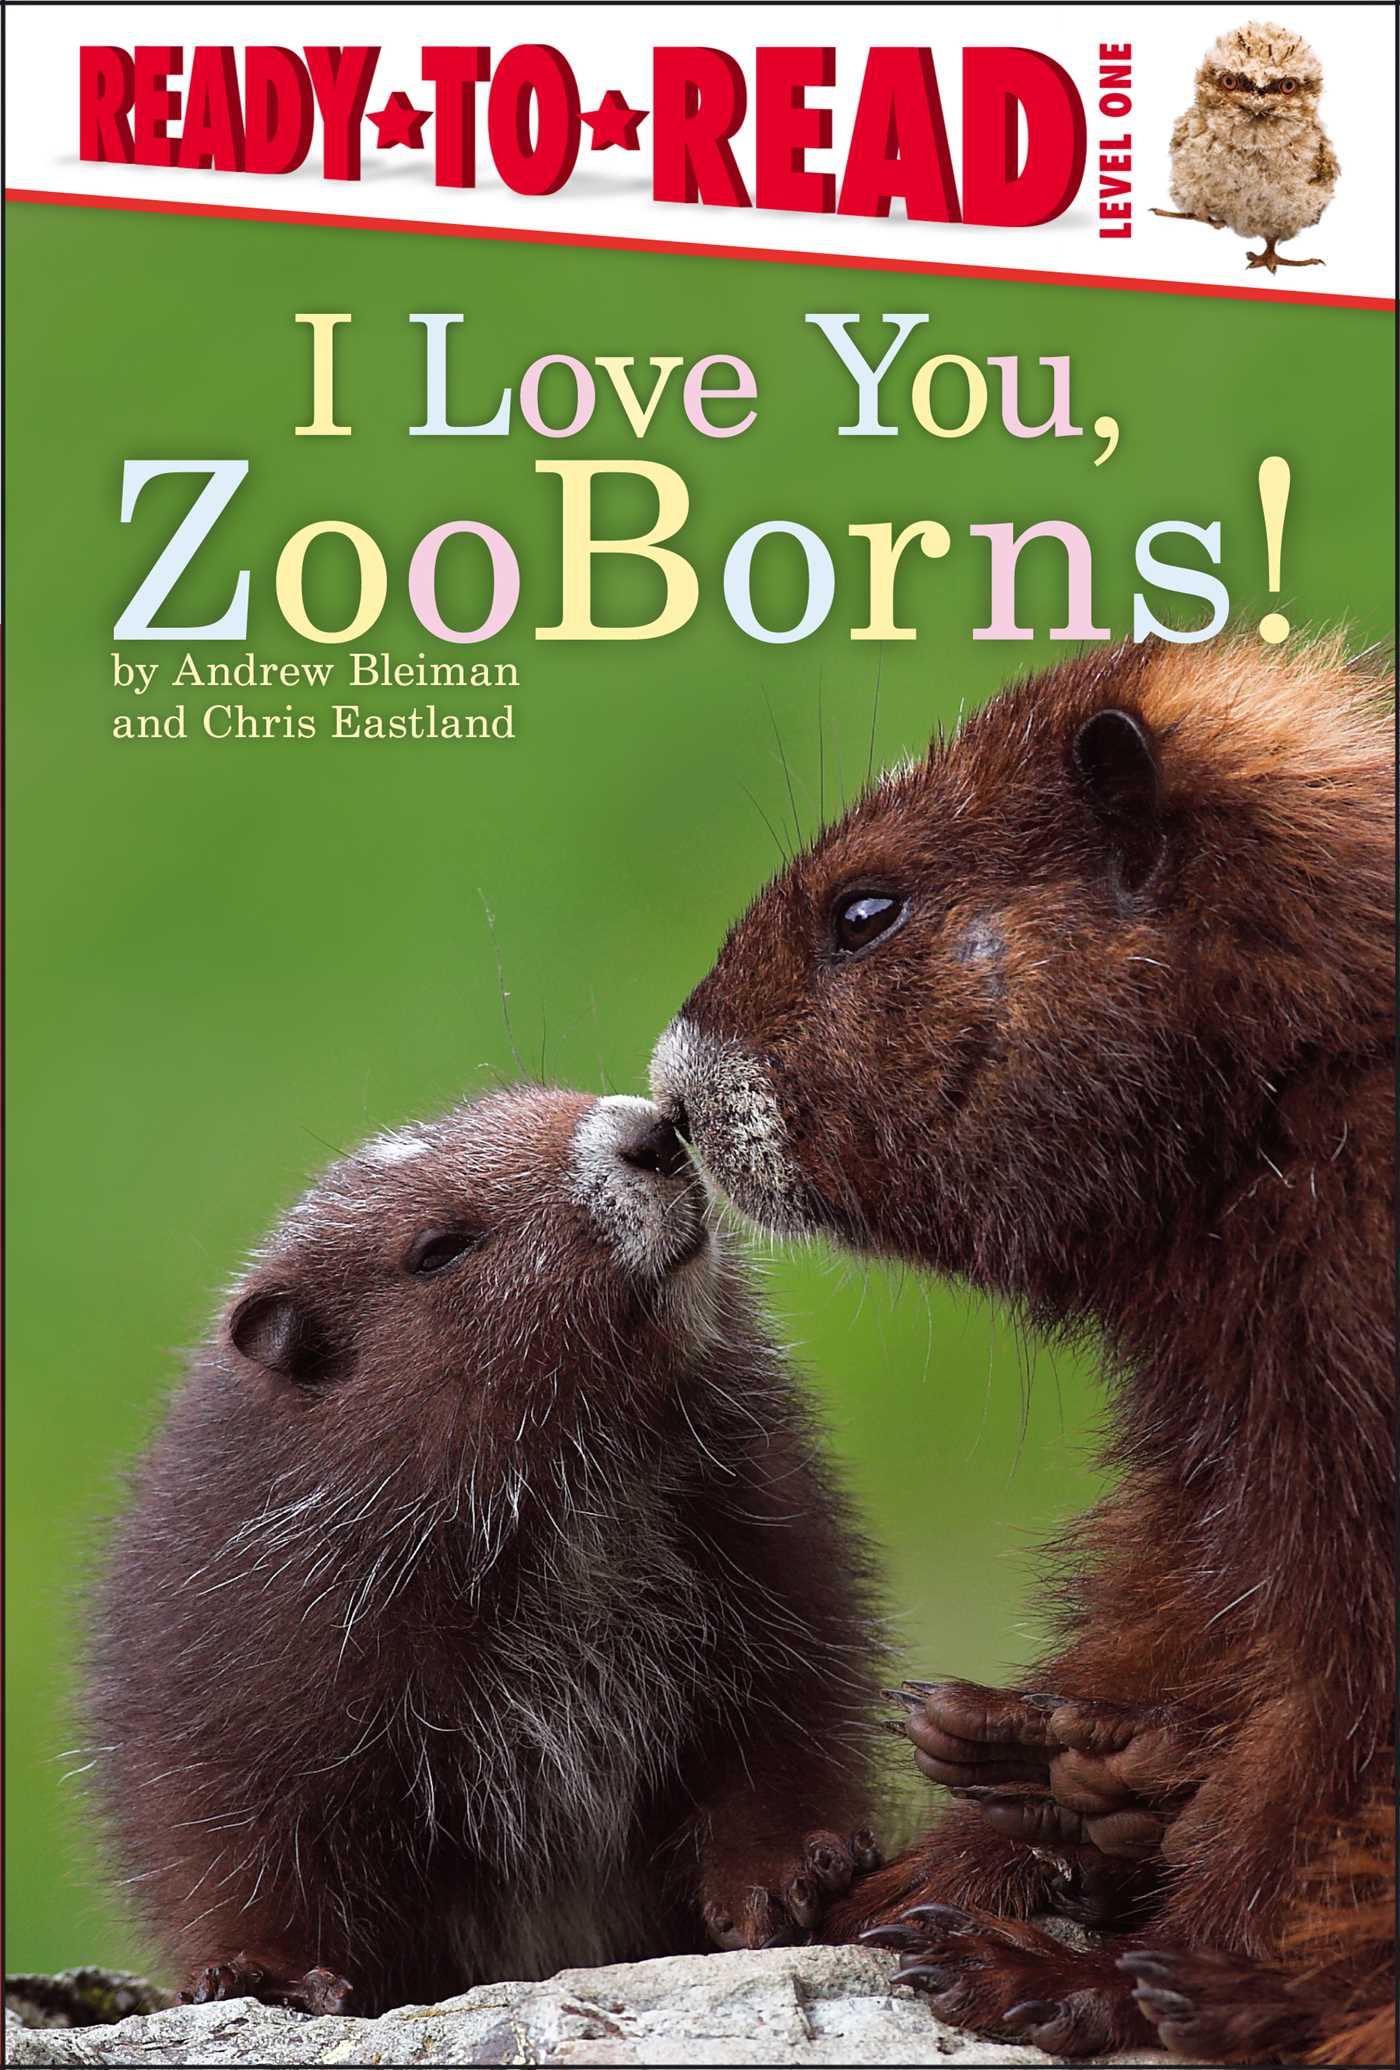 I-love-you-zooborns!-9781442443792_hr